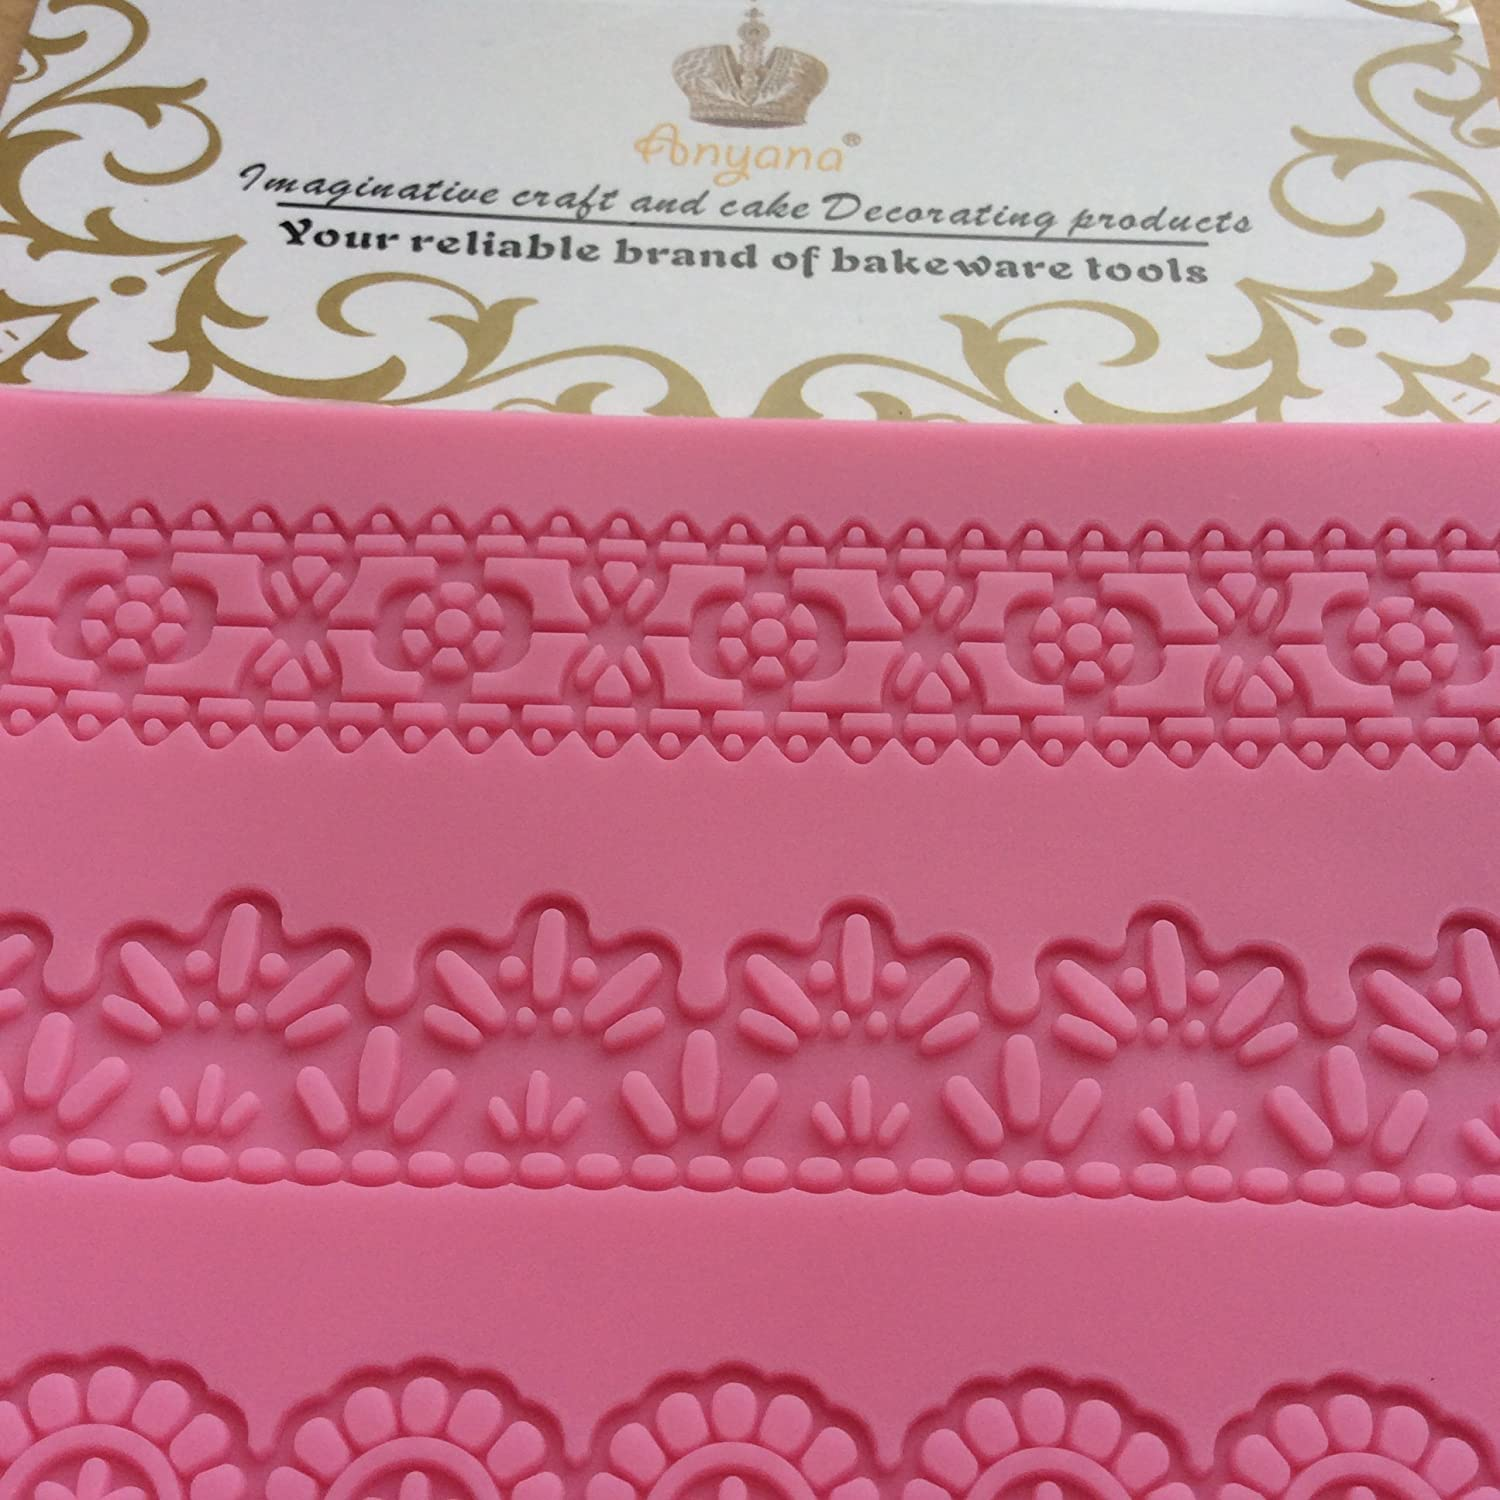 Anyana Embossing Mat Lace Band Silicone imprint Fondant impression Sugar Paste Mould Cake Decoration Tools Kitchen chocolate Sugar Paste Baking Mold Cookie Pastry